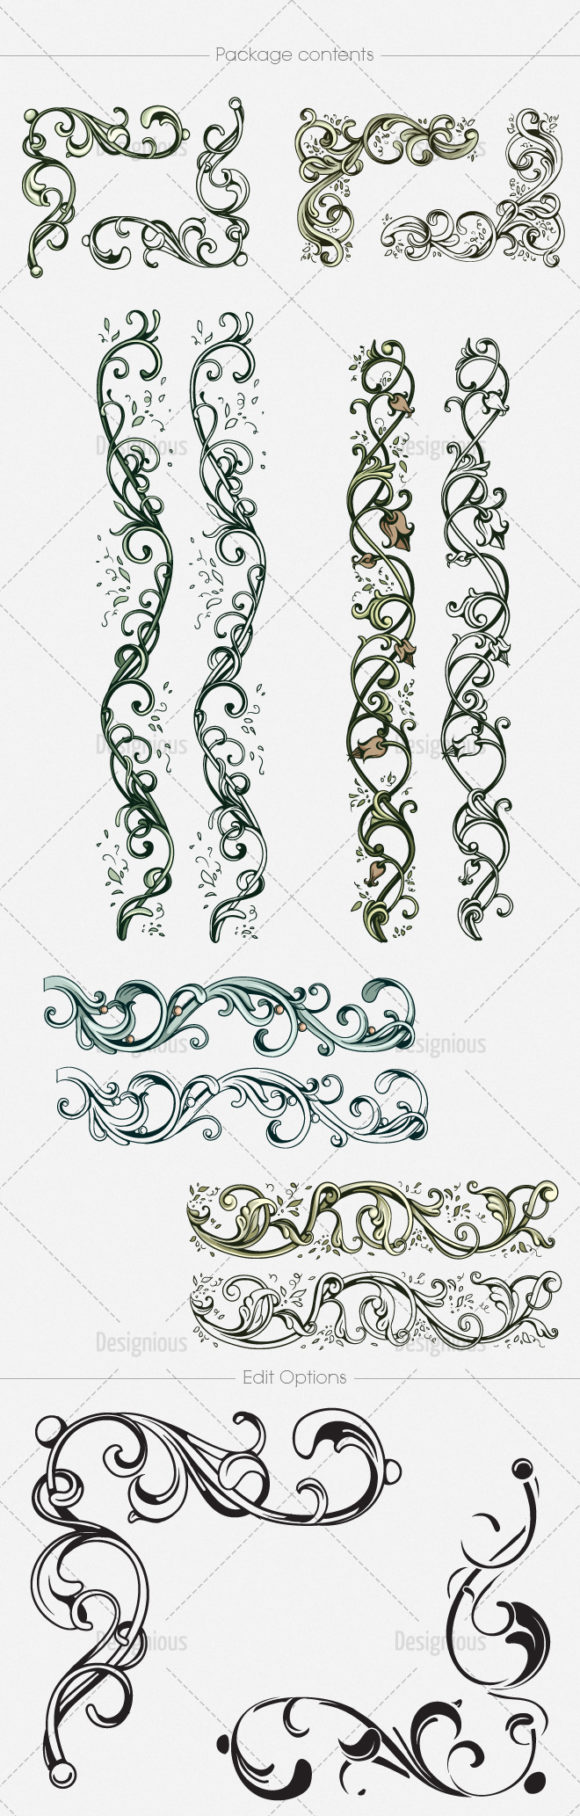 Floral Vector Pack 150 products designious vector floral 150 large